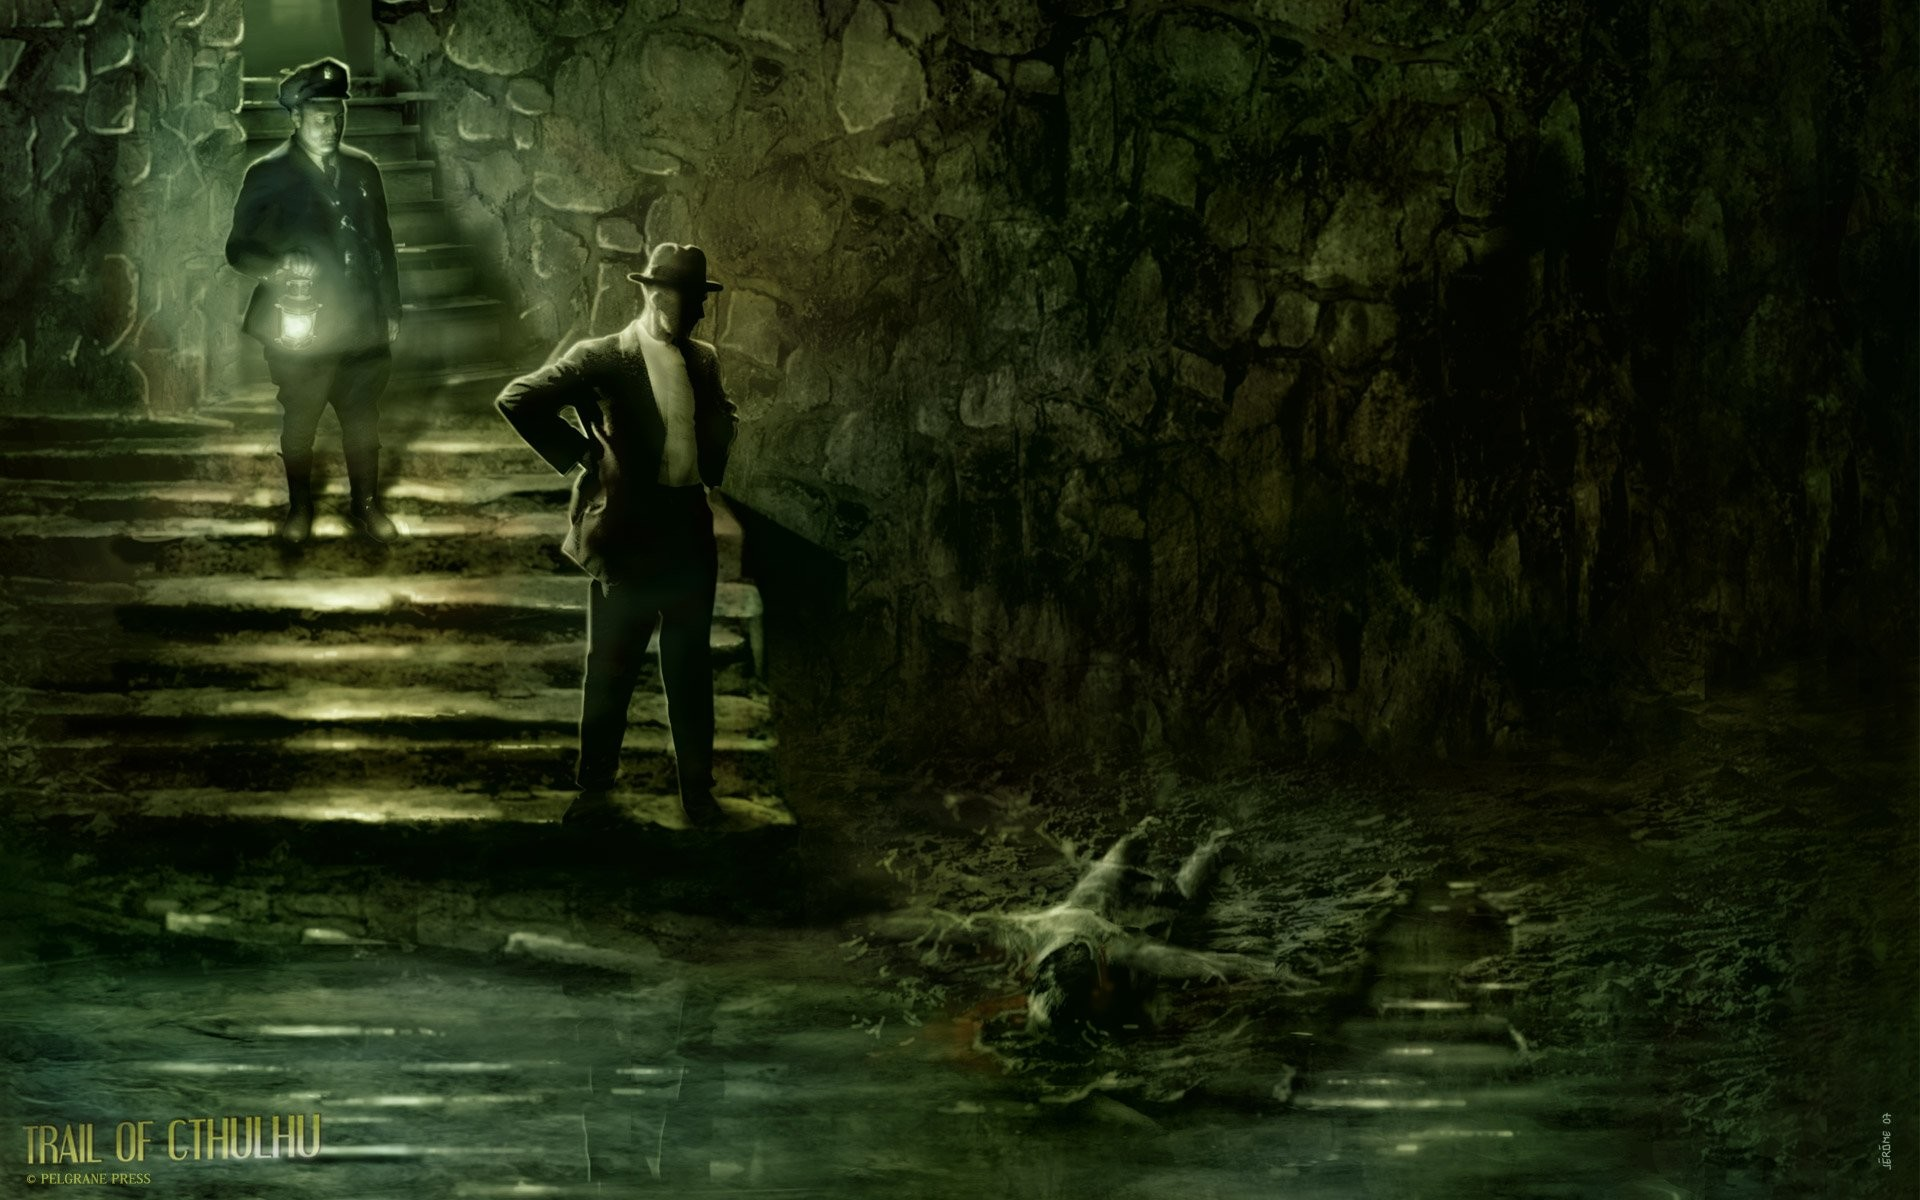 TRAIL-OF-CTHULHU horror rpg survival shooter call cthulhu fantasy trail  wallpaper | | 393000 | WallpaperUP